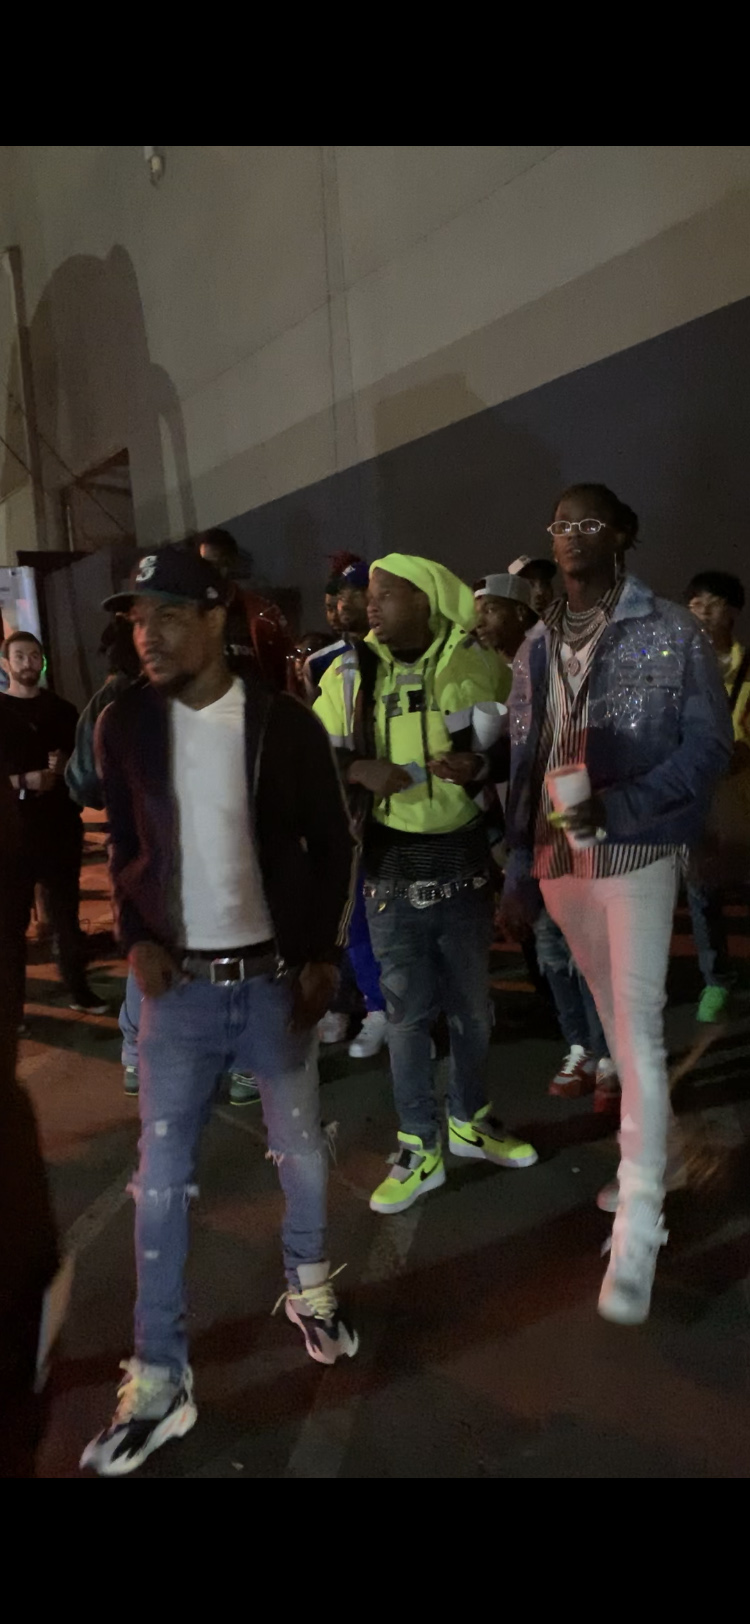 Offset and other rappers attend Travis Scott's birthday party at Universal Studios in Glendale